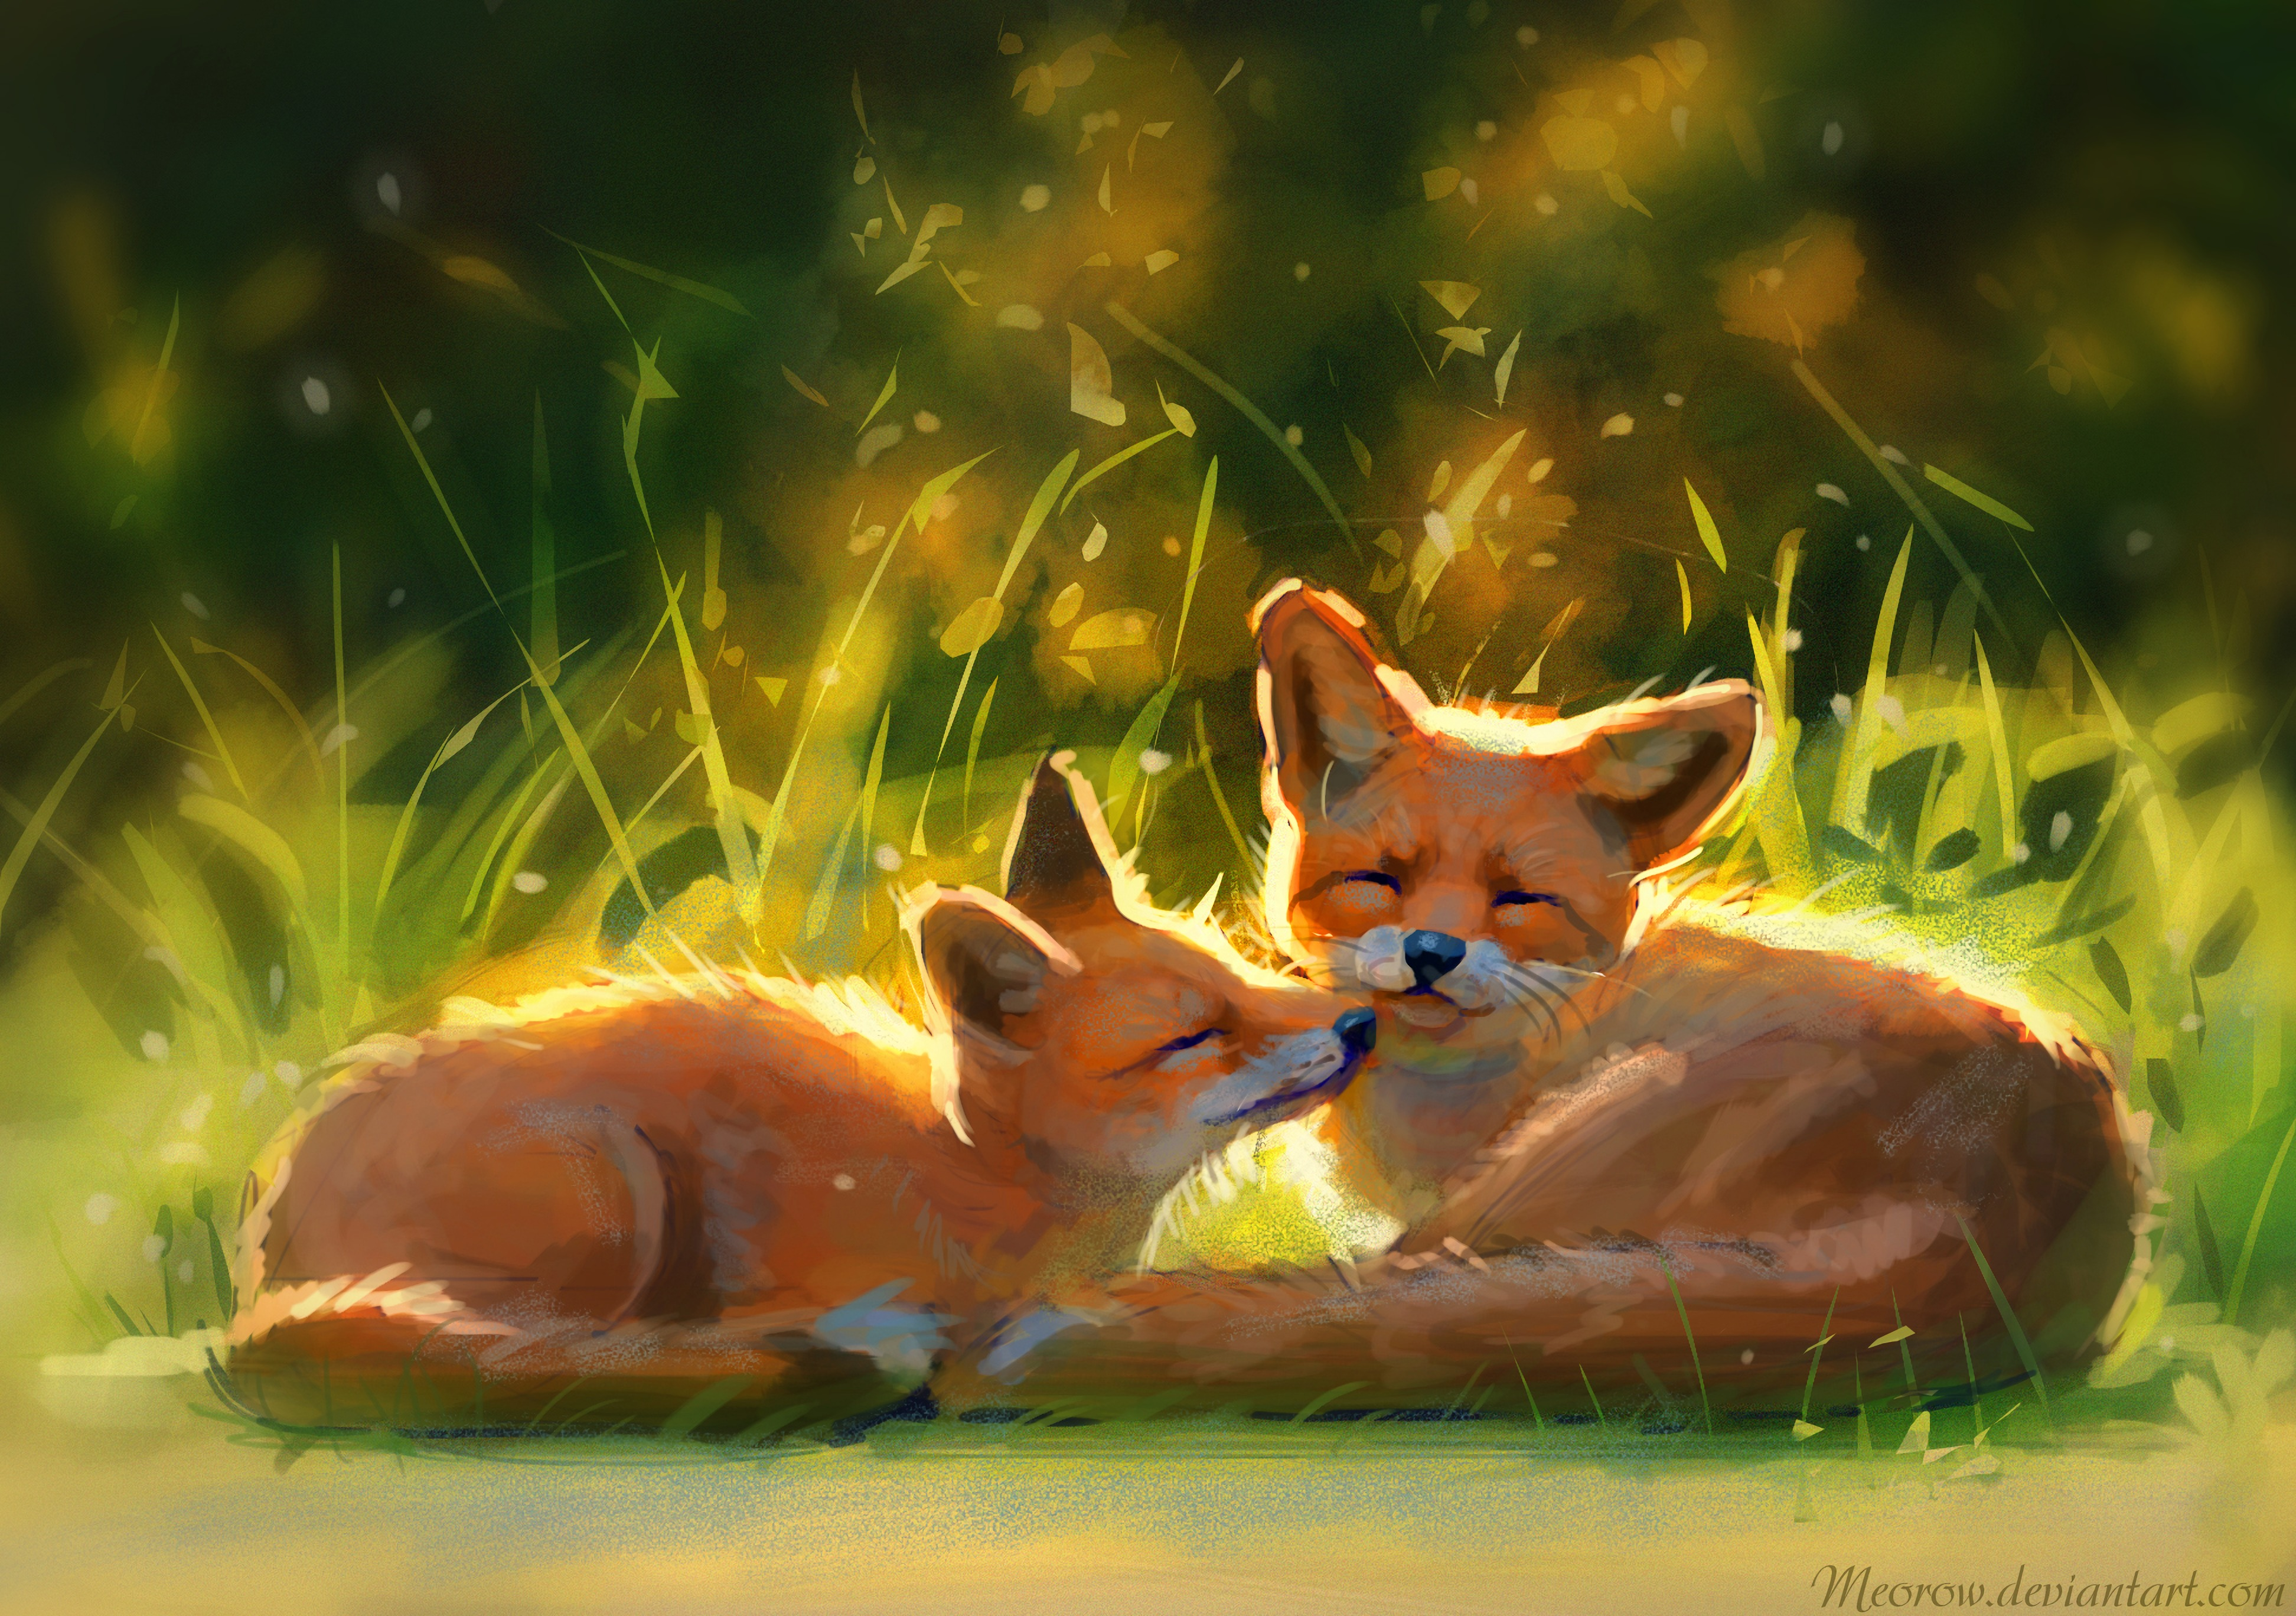 74871 download wallpaper Nice, Sweetheart, Grass, Art, Fox, Animals screensavers and pictures for free